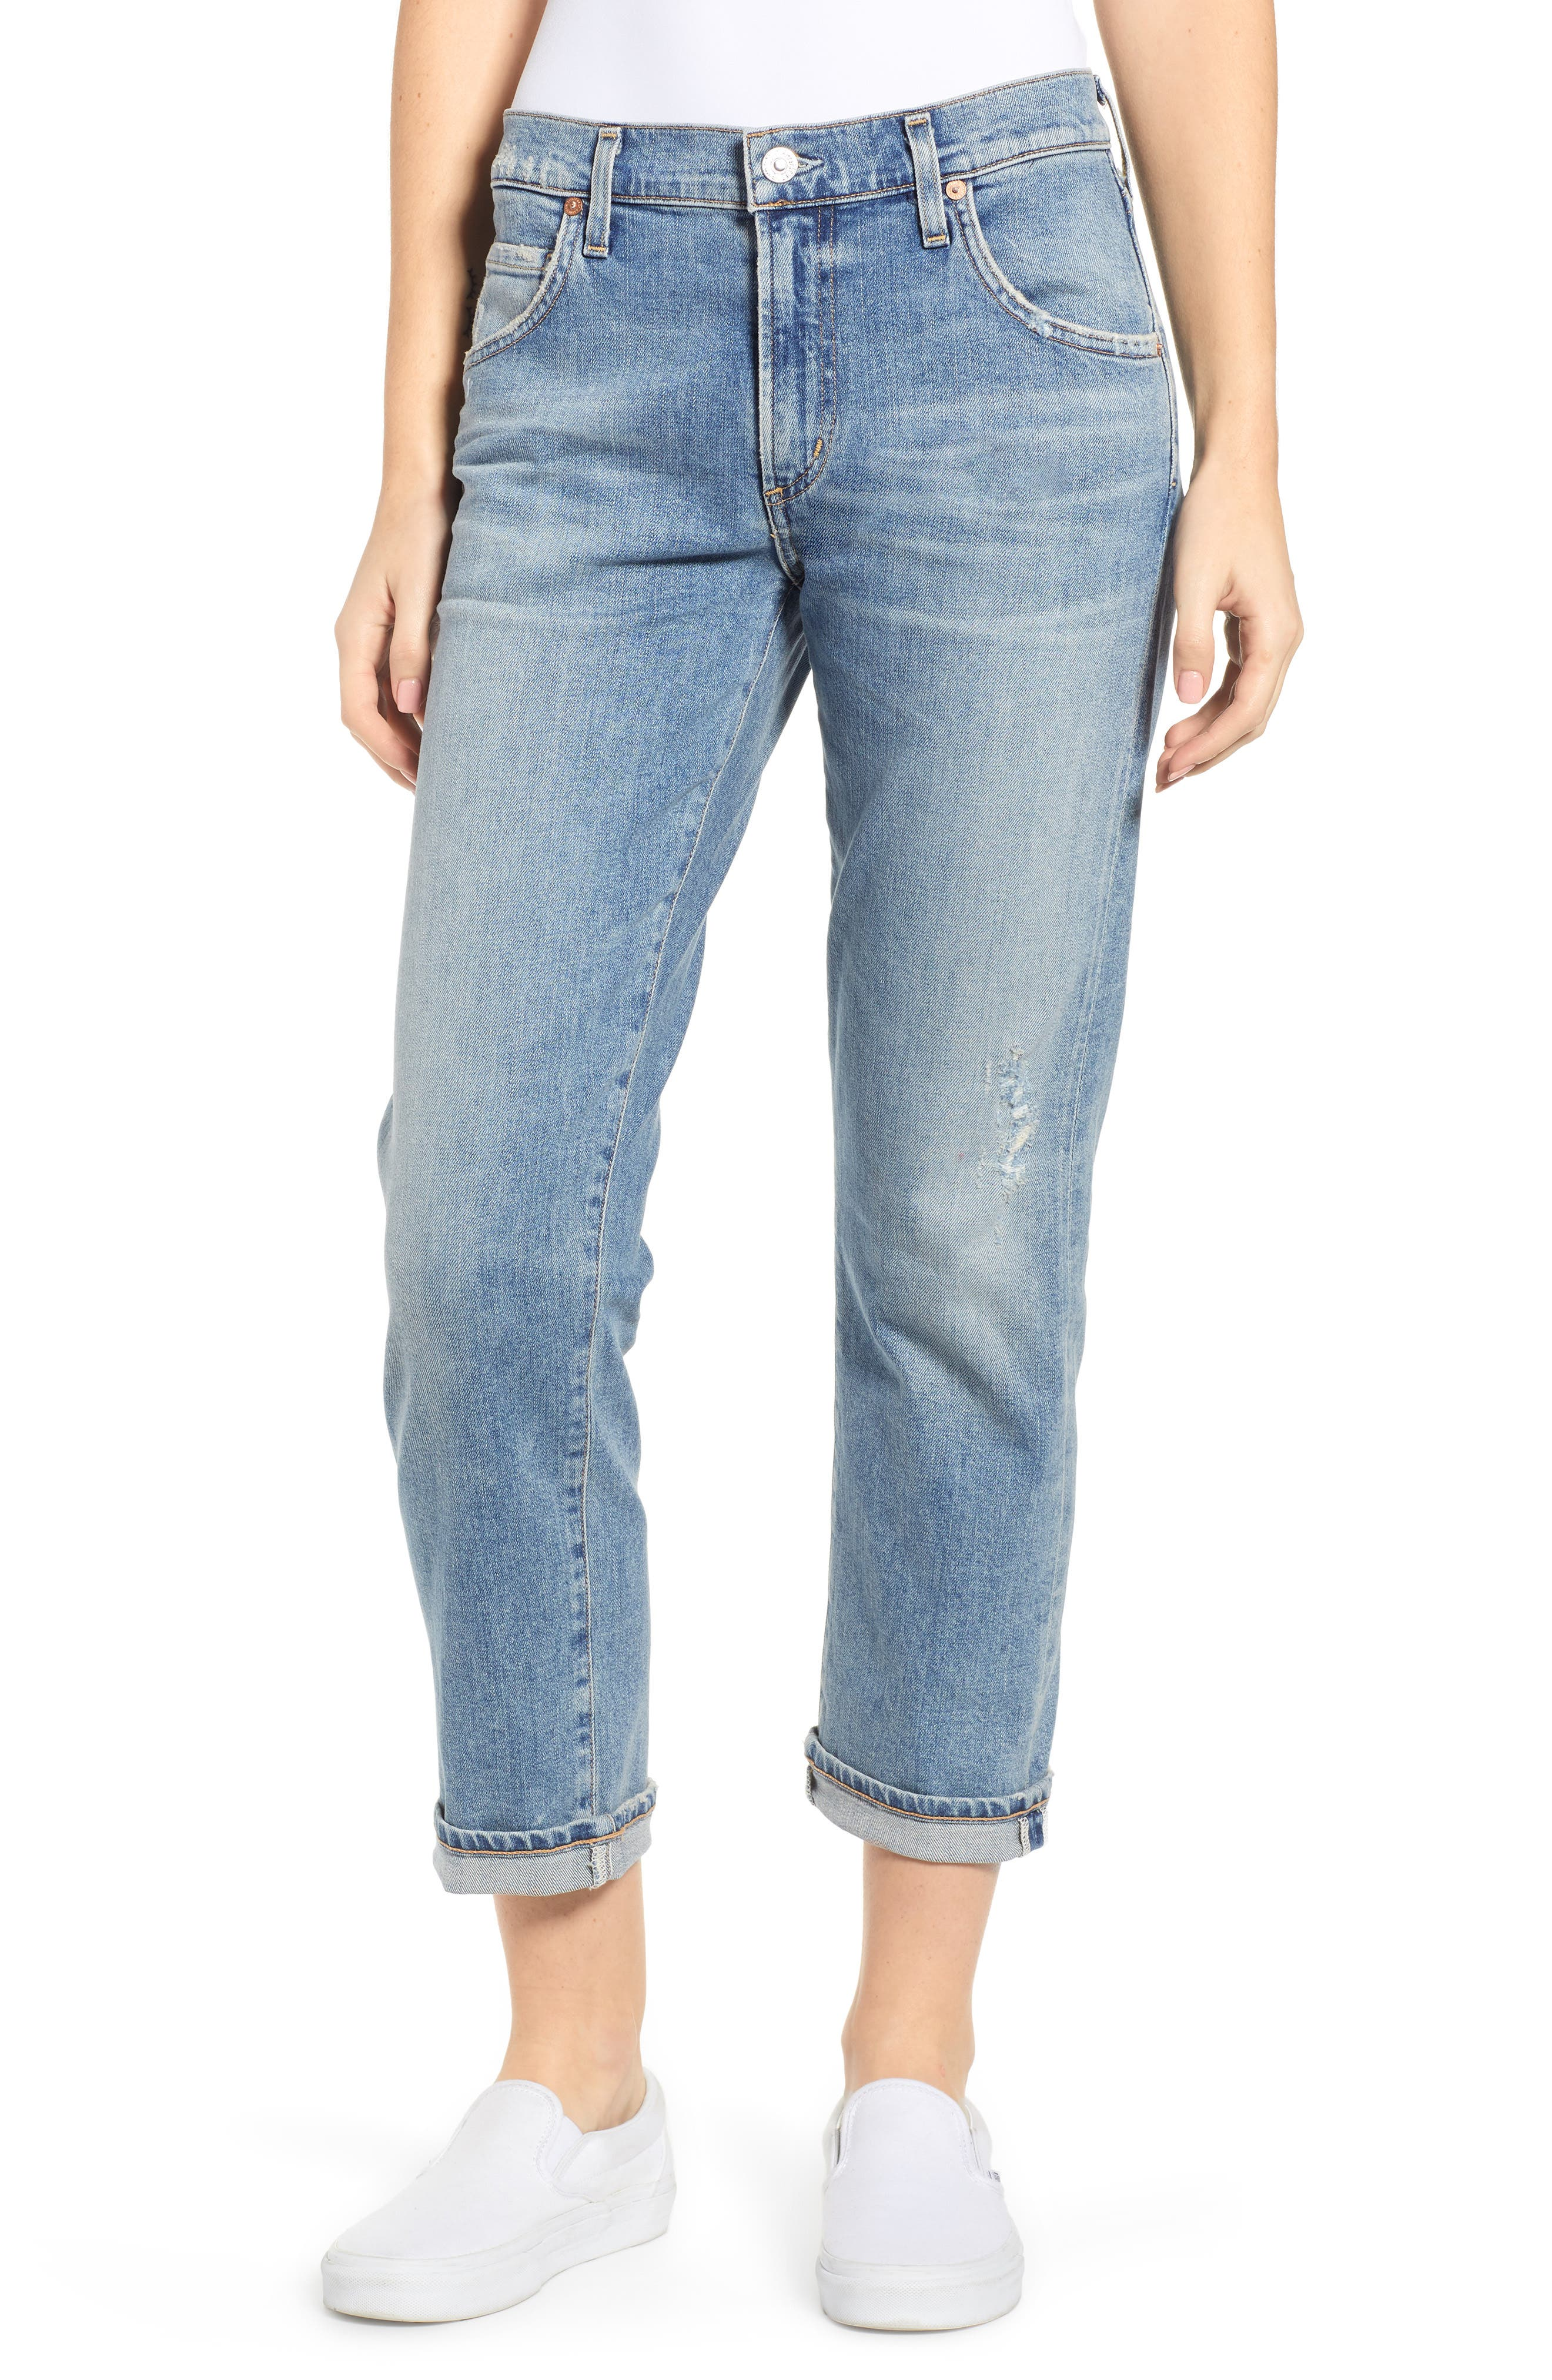 CITIZENS OF HUMANITY Emerson Crop Slim Fit Boyfriend Jeans, Main, color, MARINA